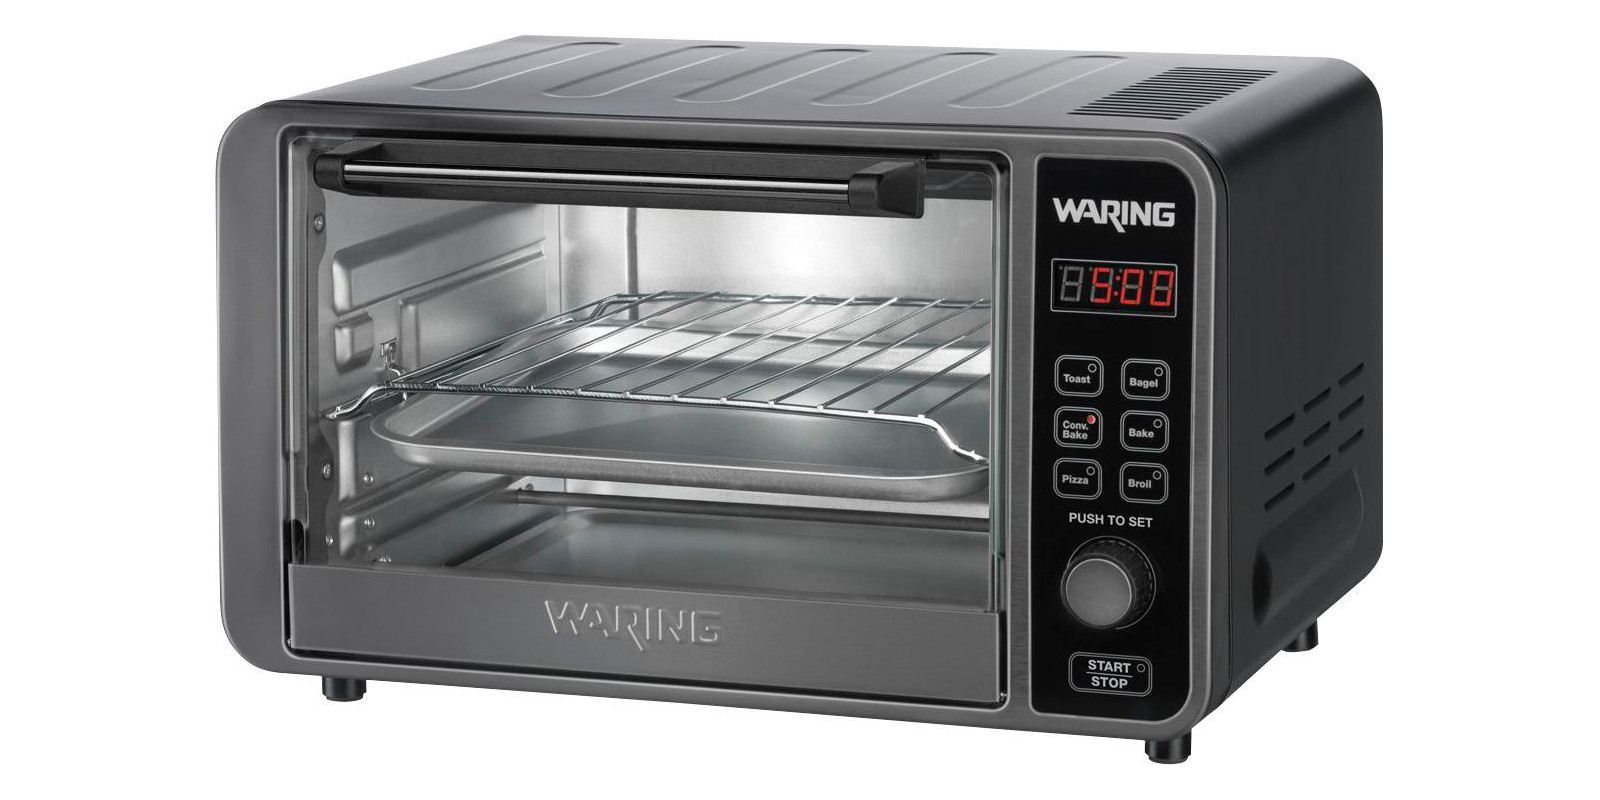 Waring Pro S Stainless Steel Toaster Oven Drops To 40